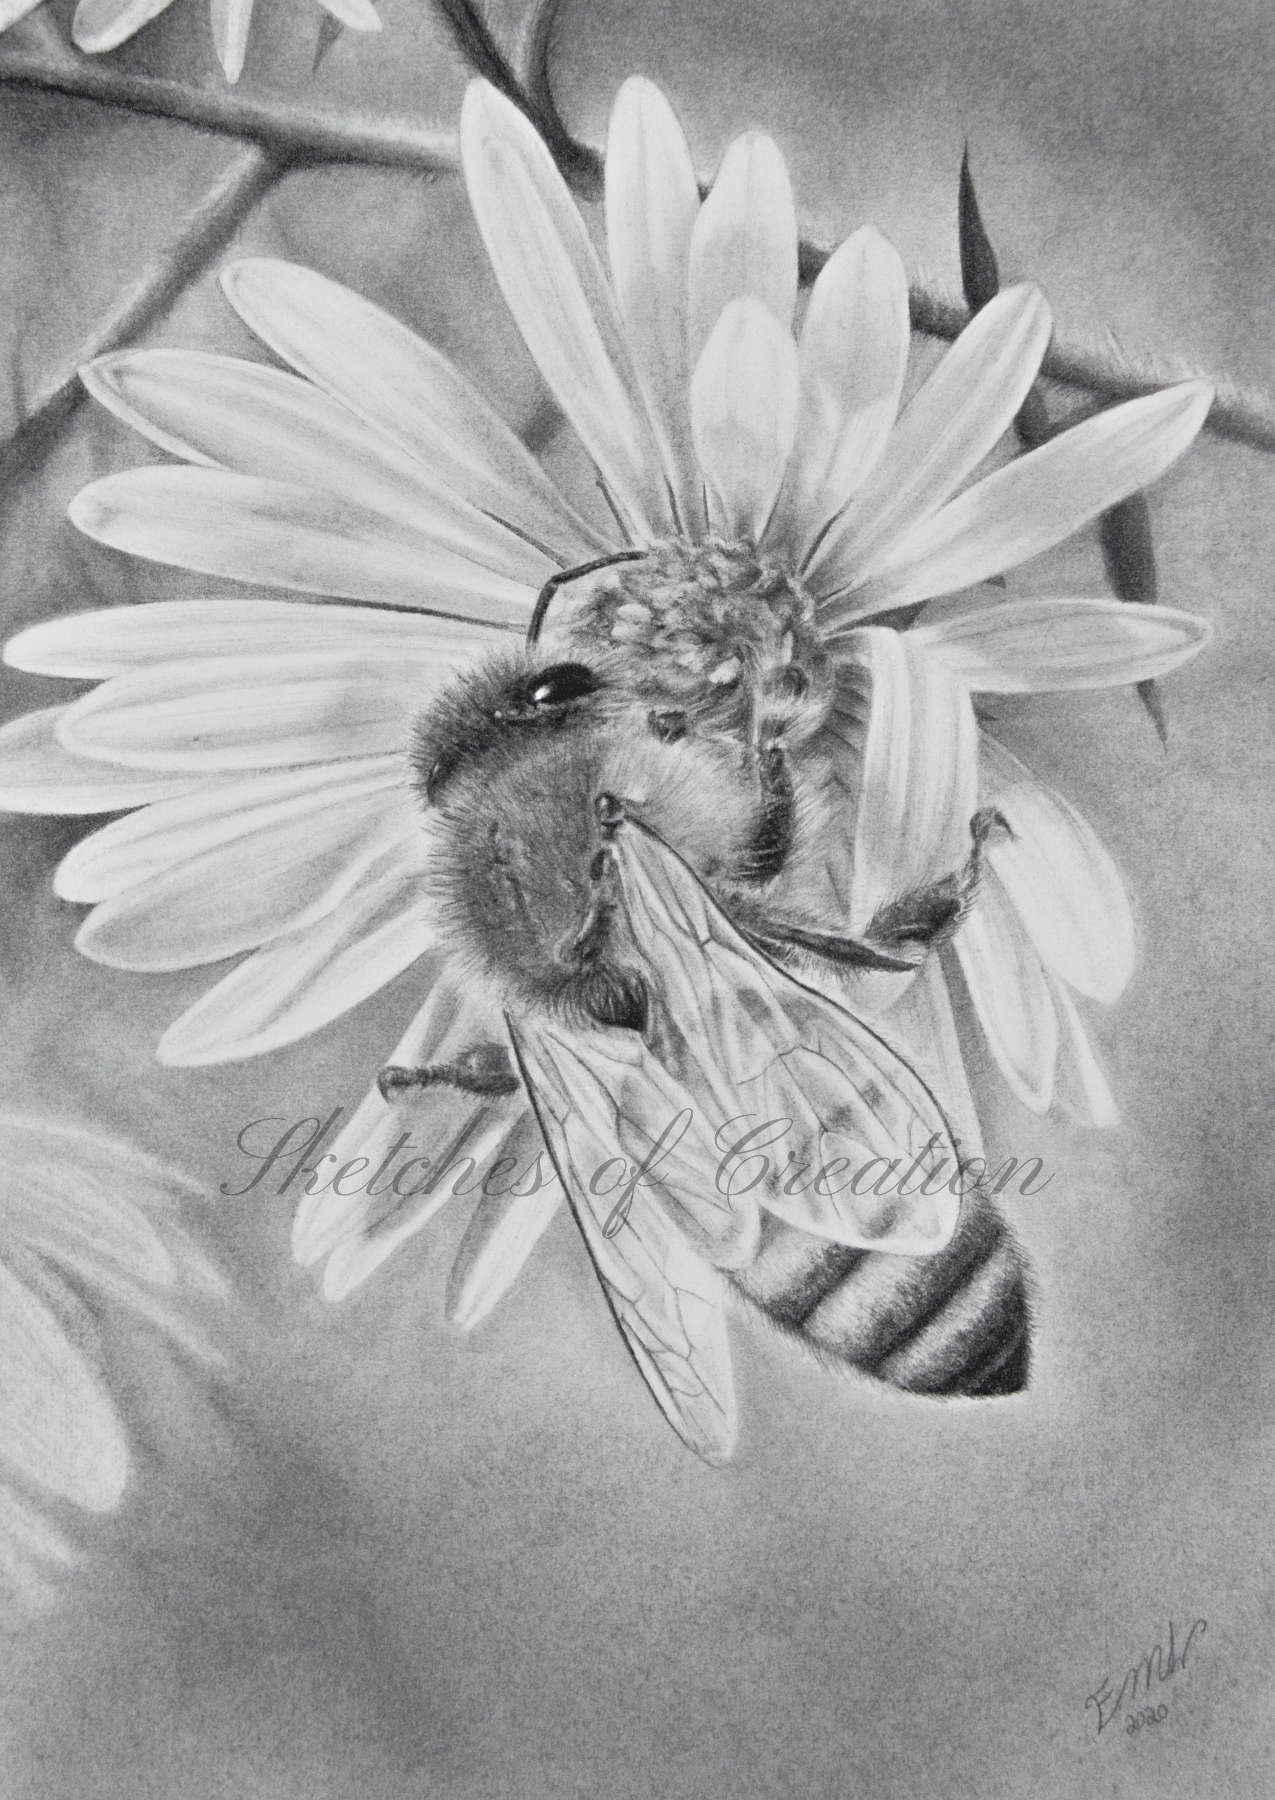 'Honeybee' a drawing of a honey bee on a flower. 5x7 inches. Completed October 2020